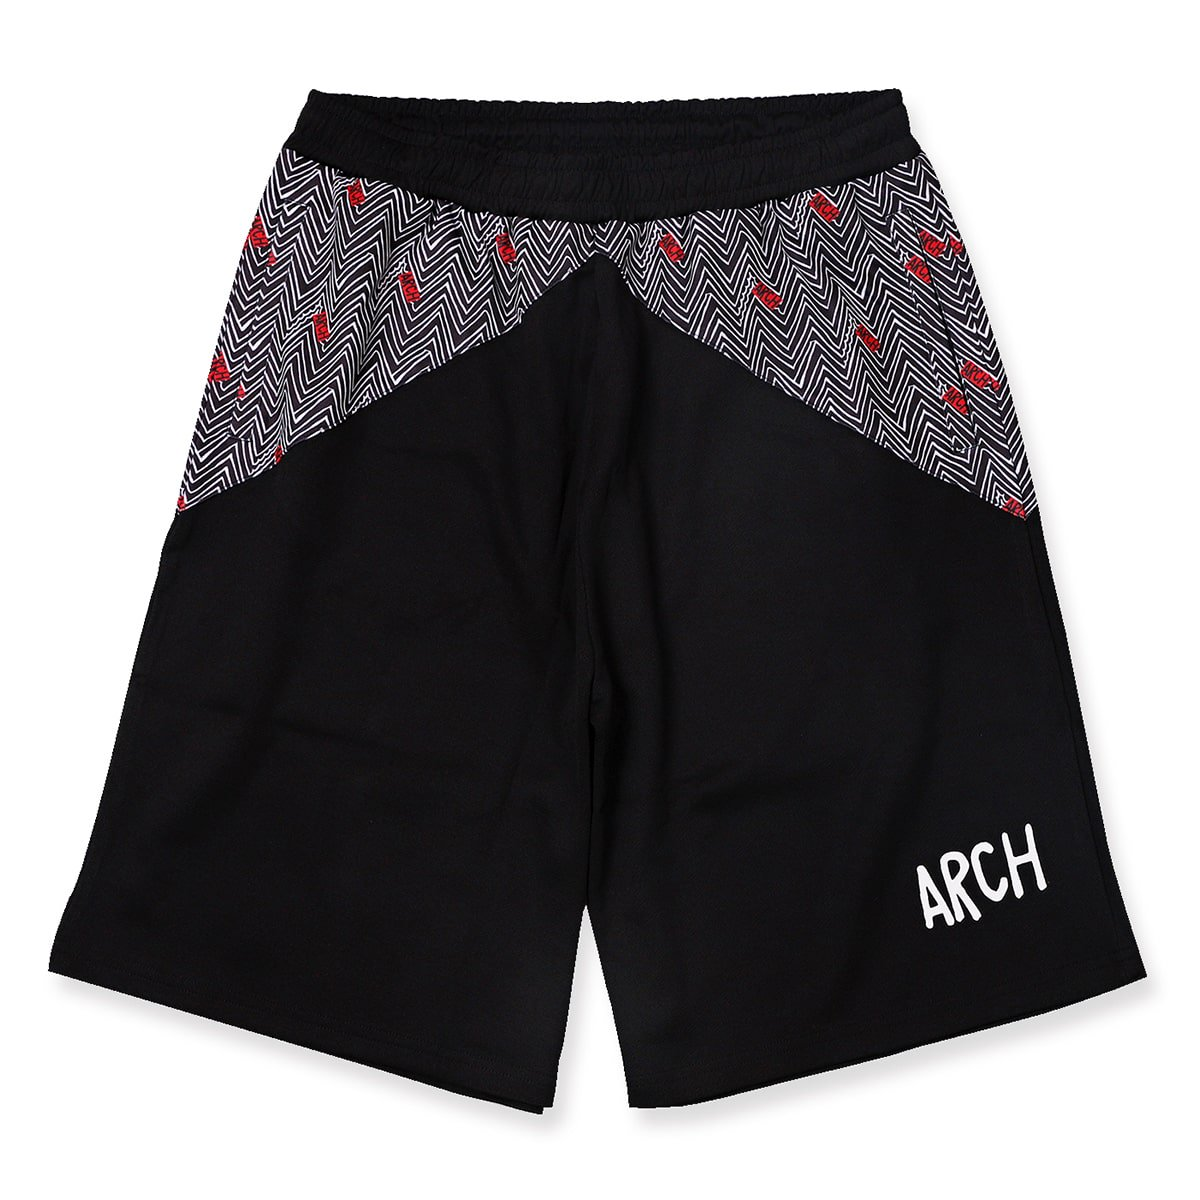 jaggy shorts【black/white】